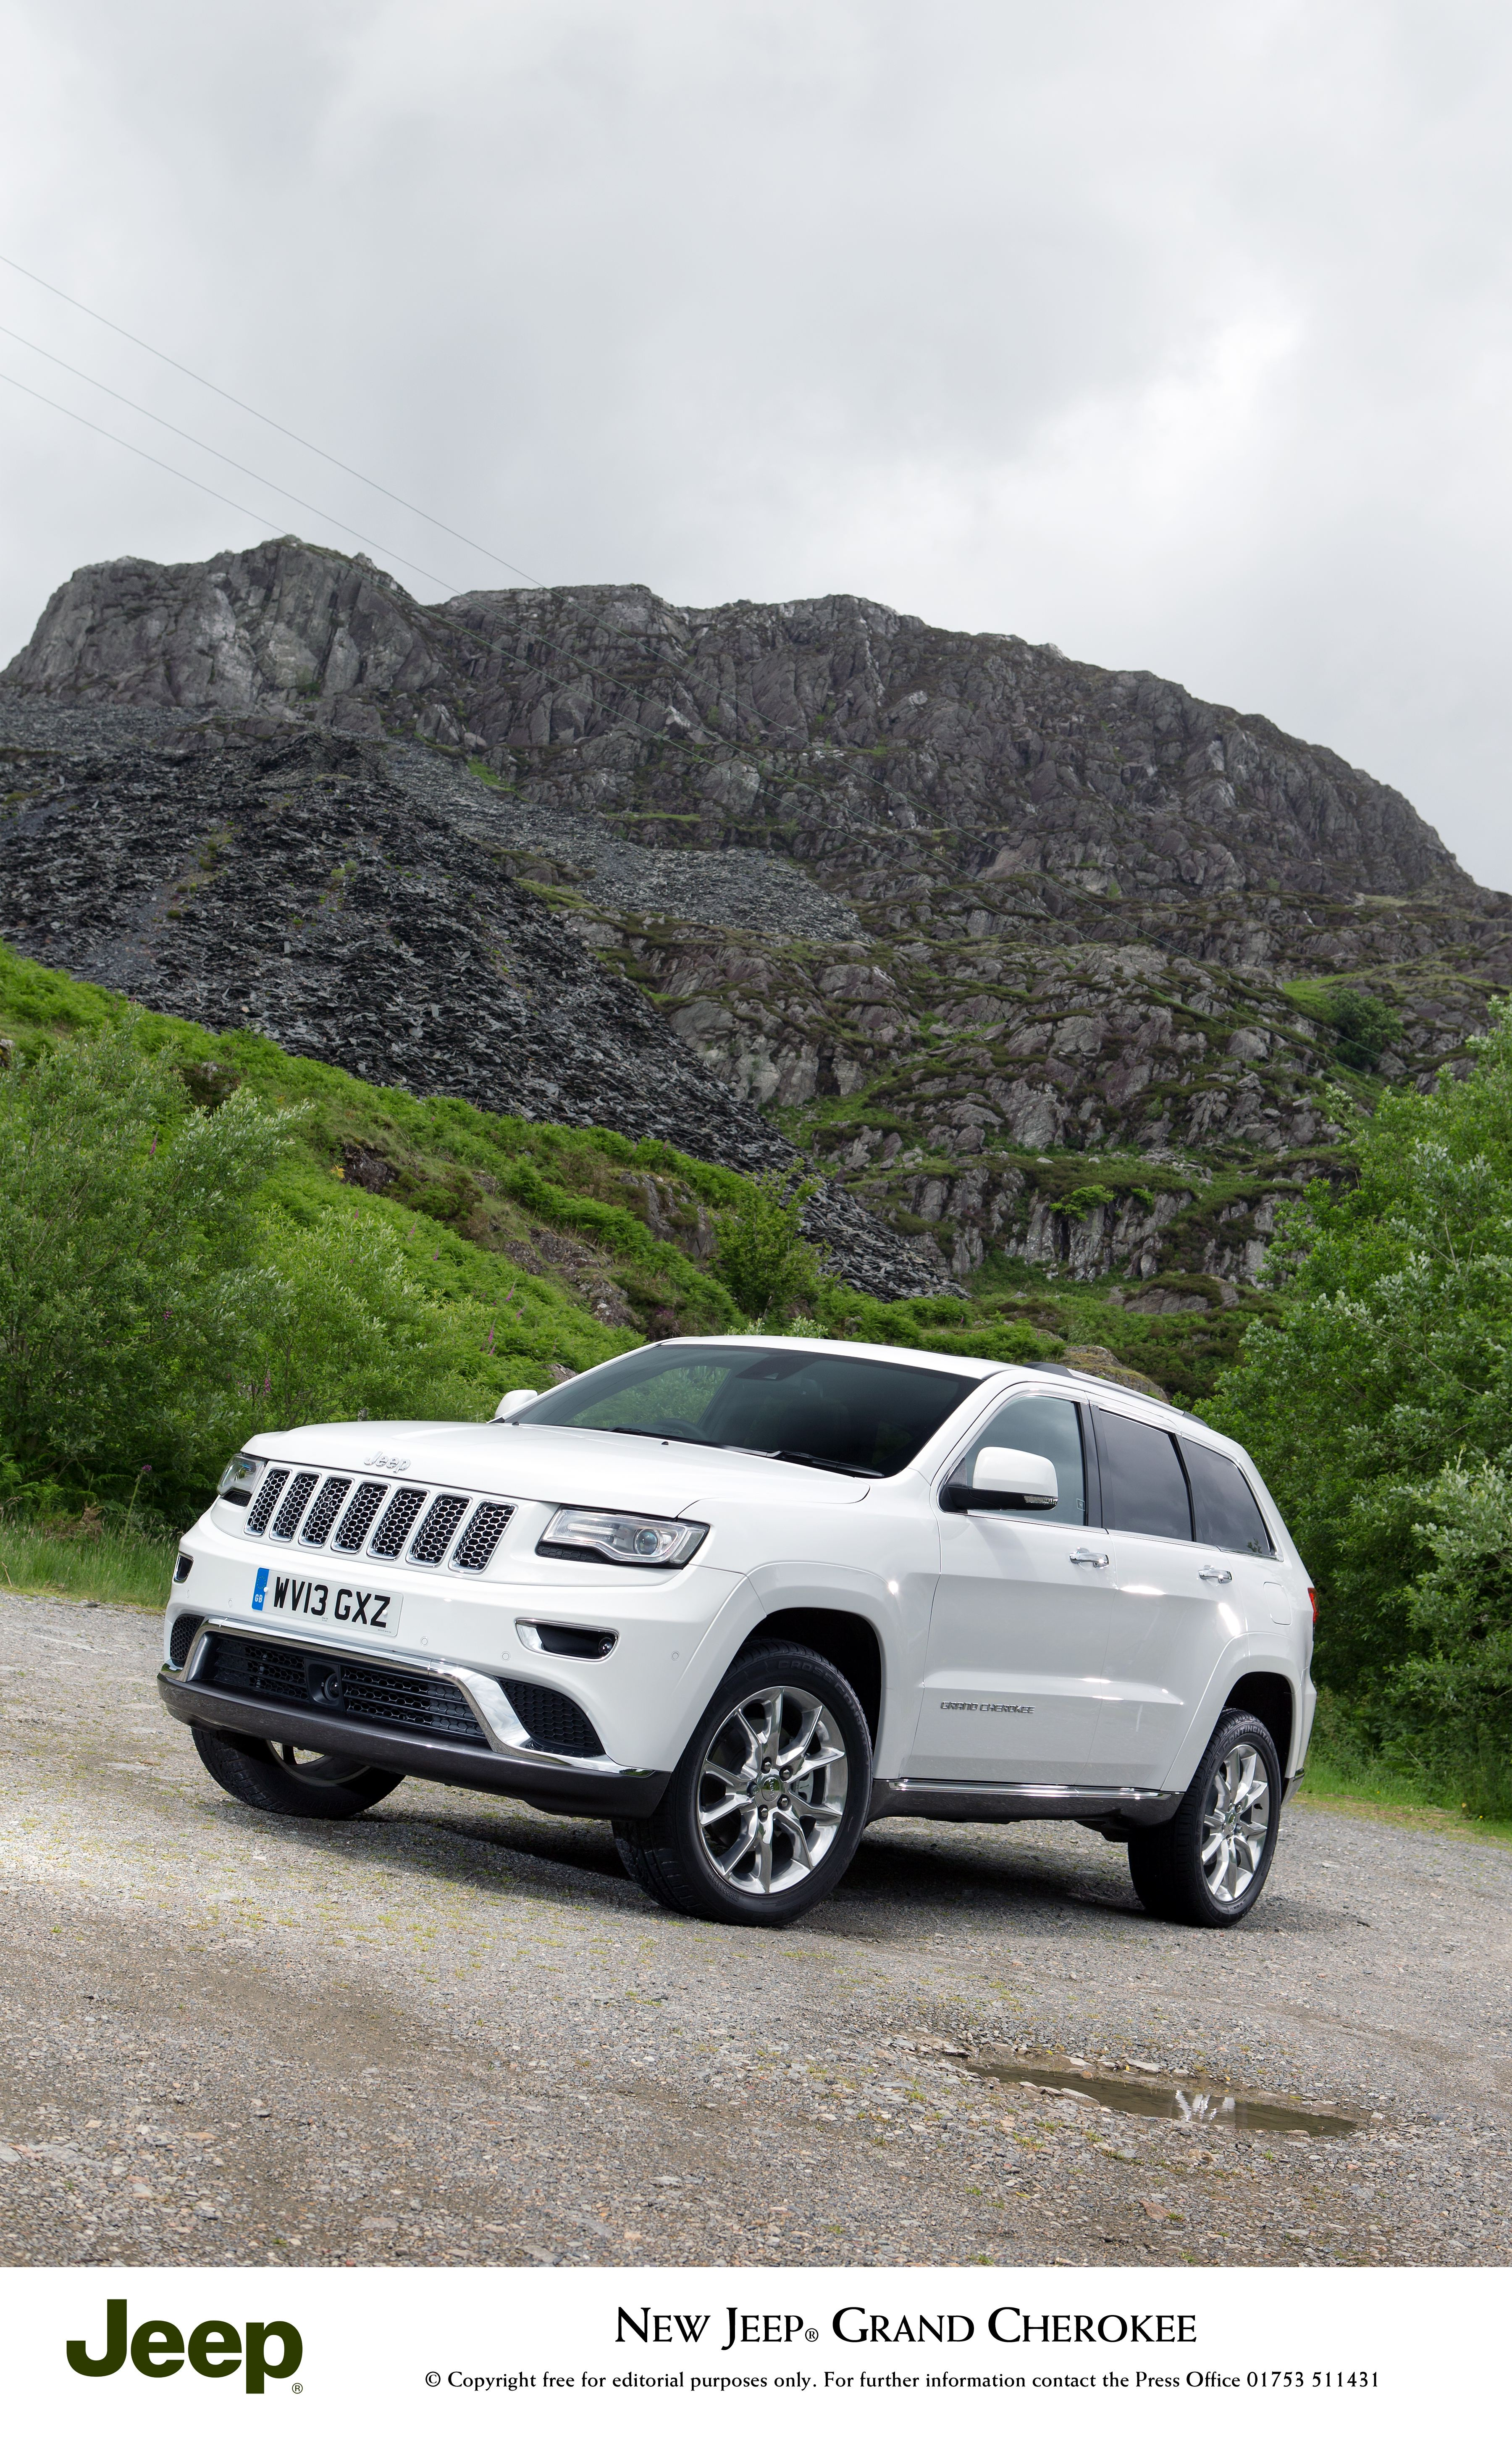 2014 JEEP GRAND CHEROKEE TECHNOLOGICAL EVOLUTION OF THE SPECIES